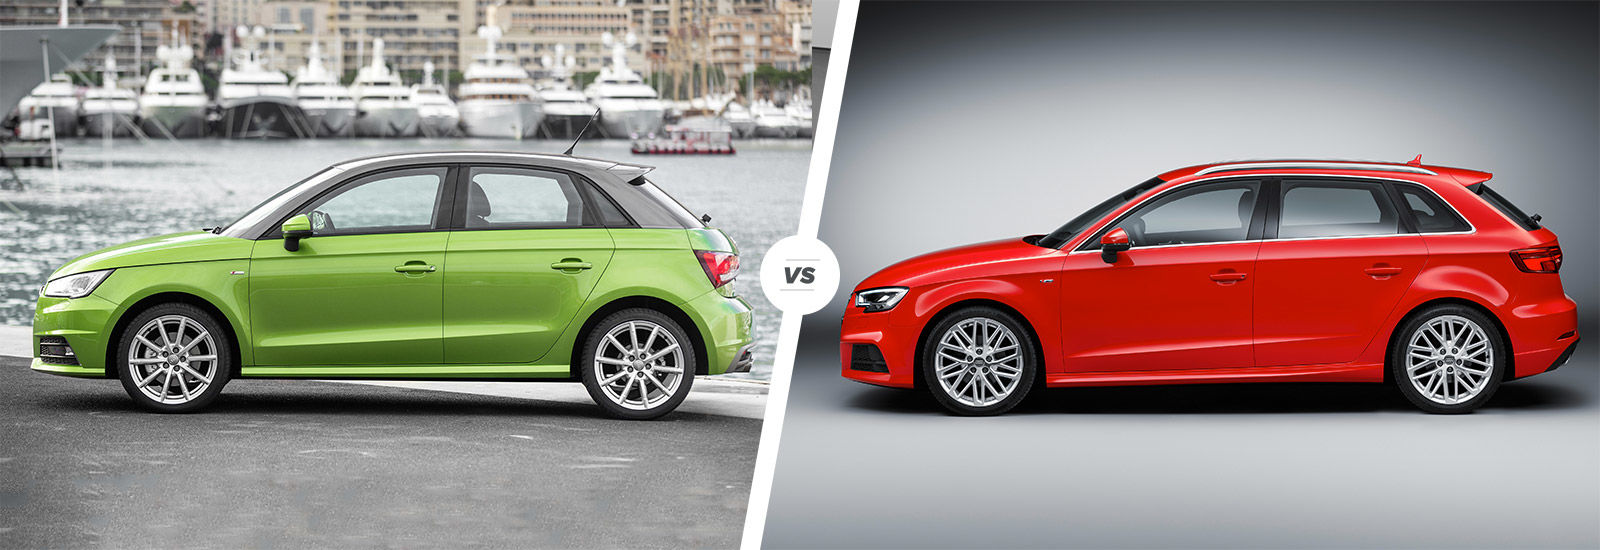 Audi A Vs A Sidebyside Comparison Carwow - Audi a3 hatchback